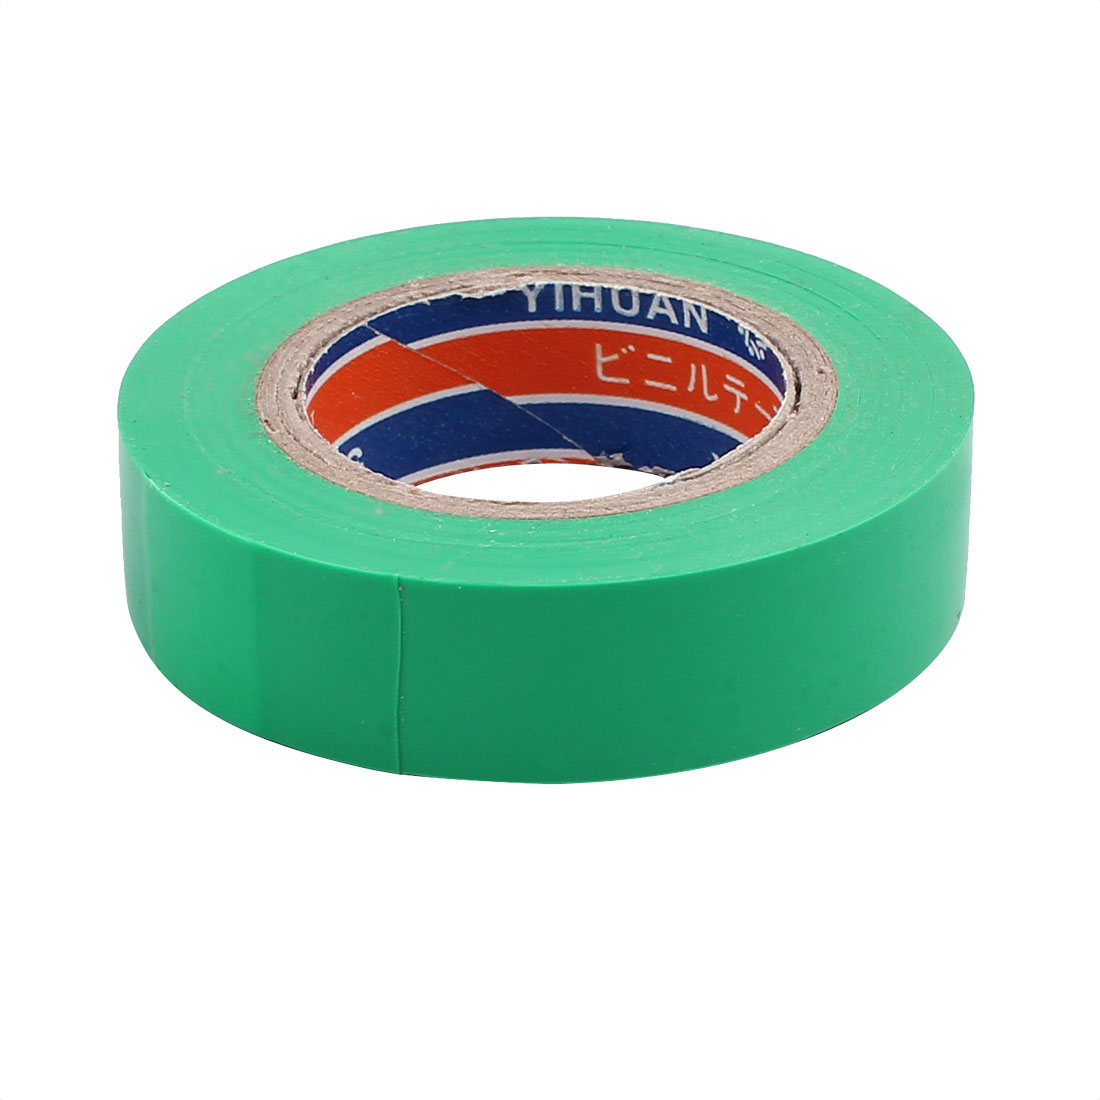 17mm Width PVC Green Electrical Insulation Warning Adhesive Tape 20M Lenth - image 1 de 3